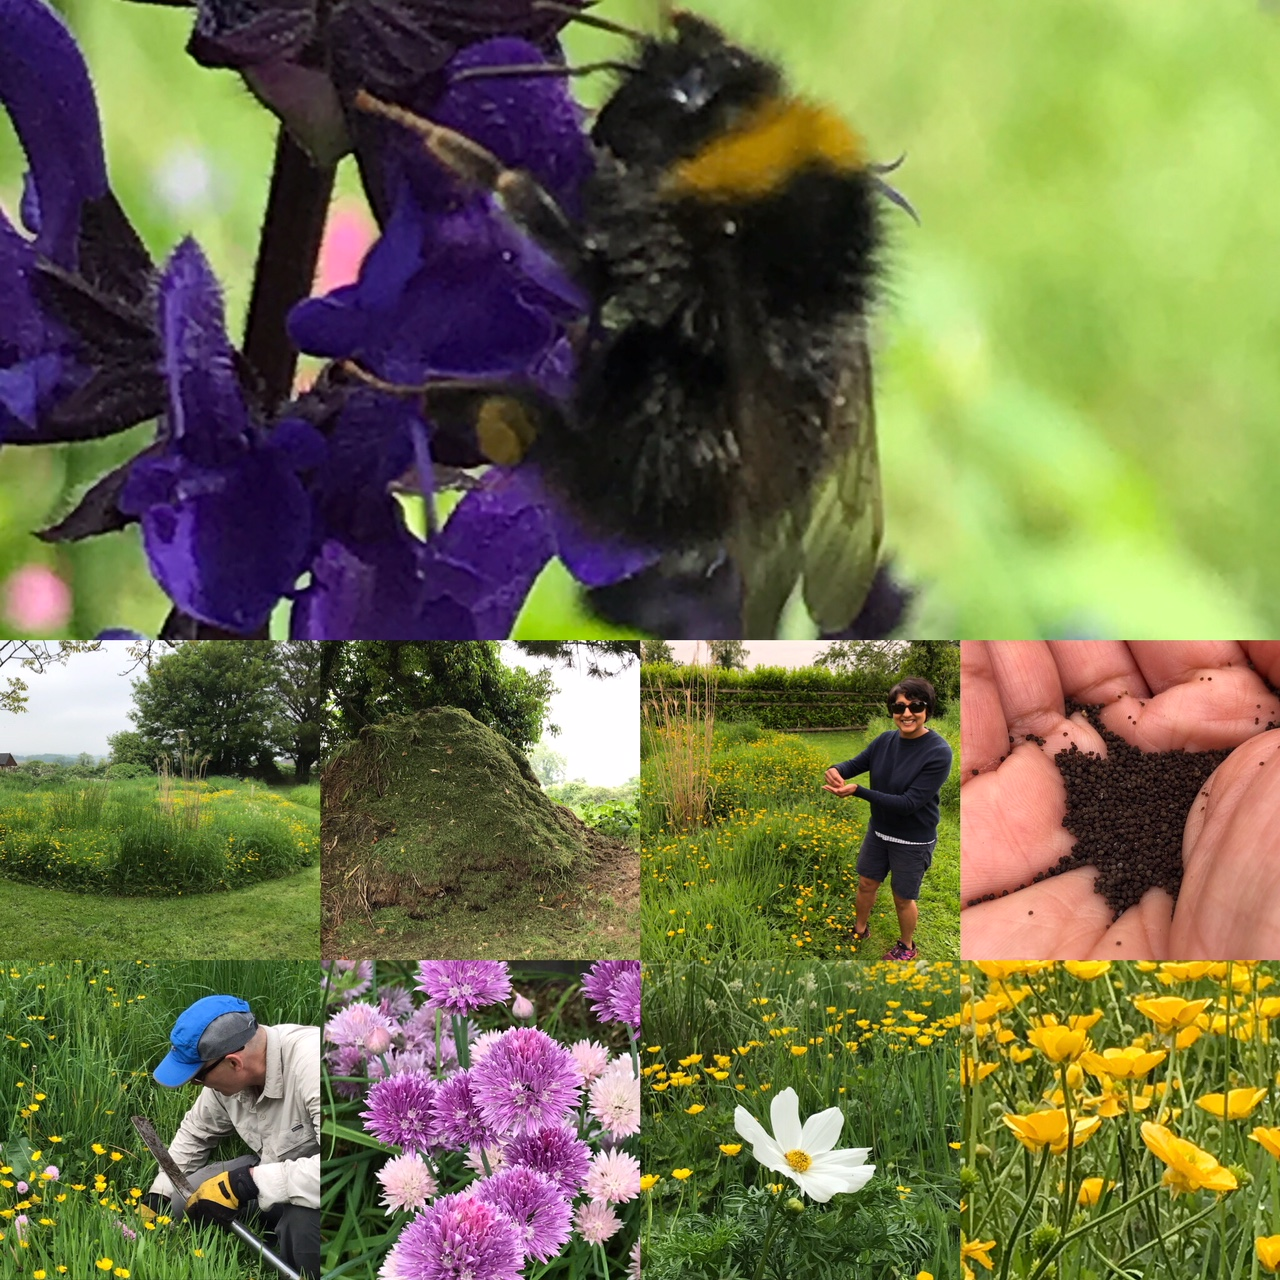 The importance of diversity of wildlife in food production - focus on bees